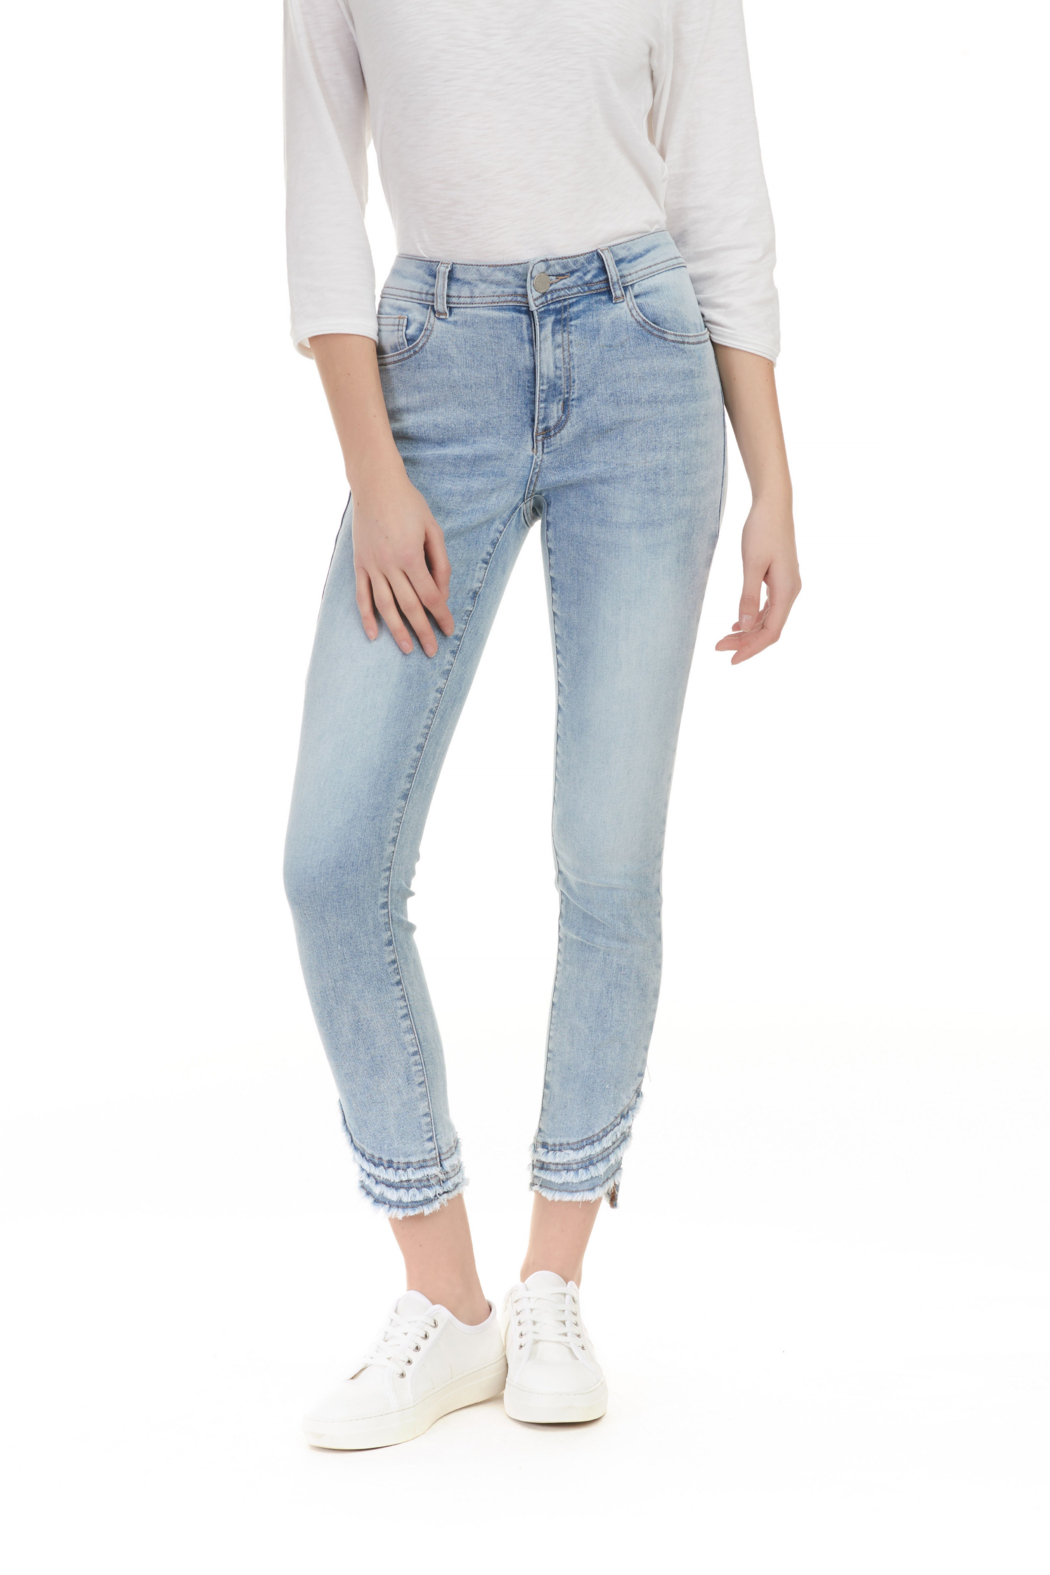 Charlie B Ripped Hem Jeans - Front Cropped Image